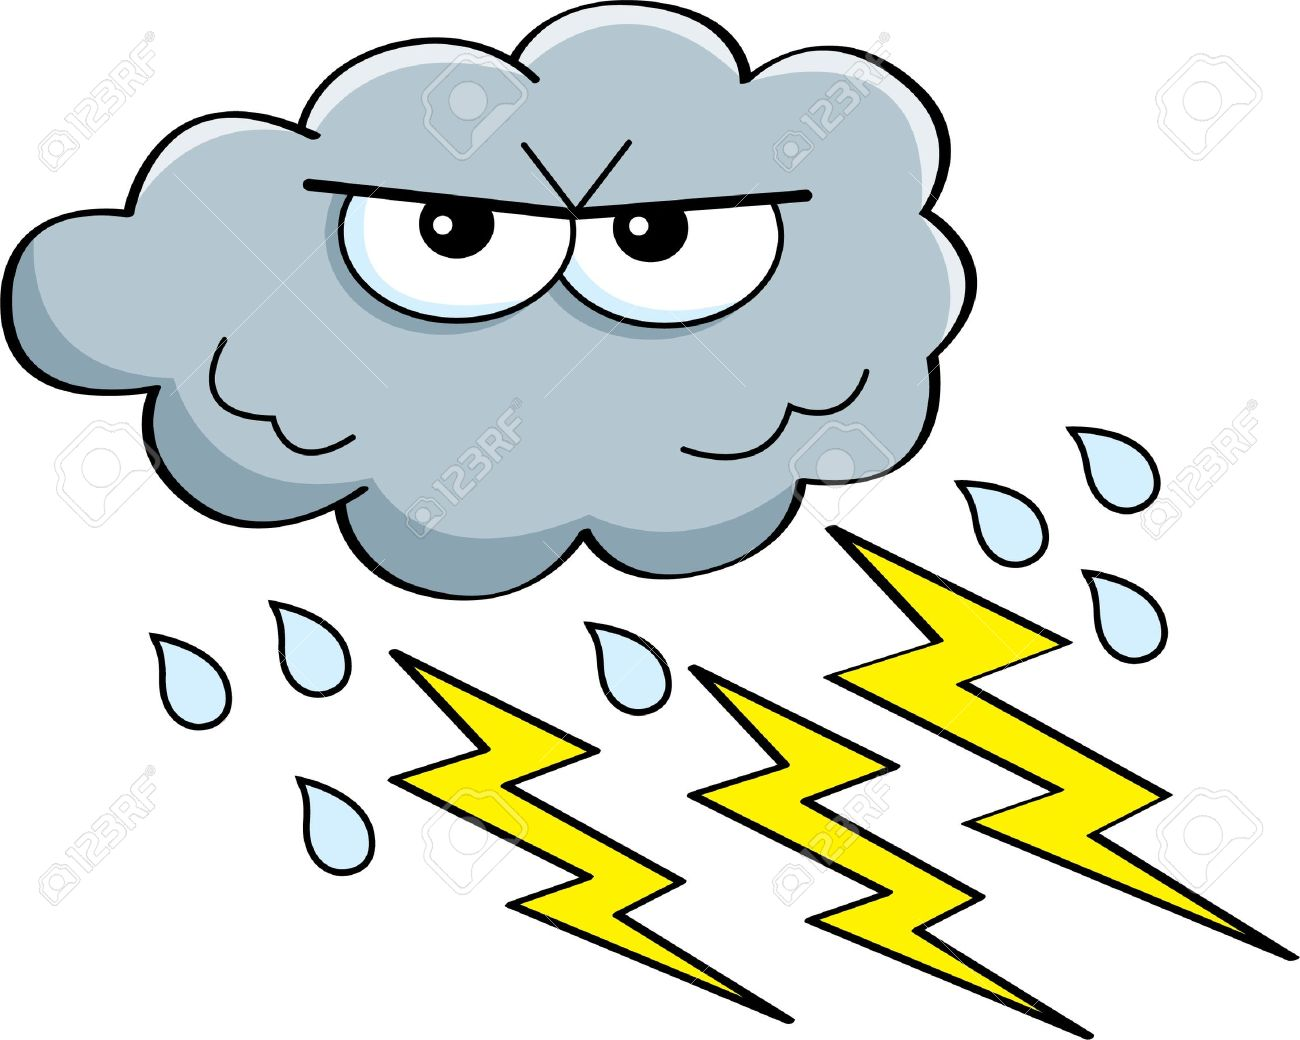 Free Thunder Clipart stormy, Download Free Clip Art on Owips.com.